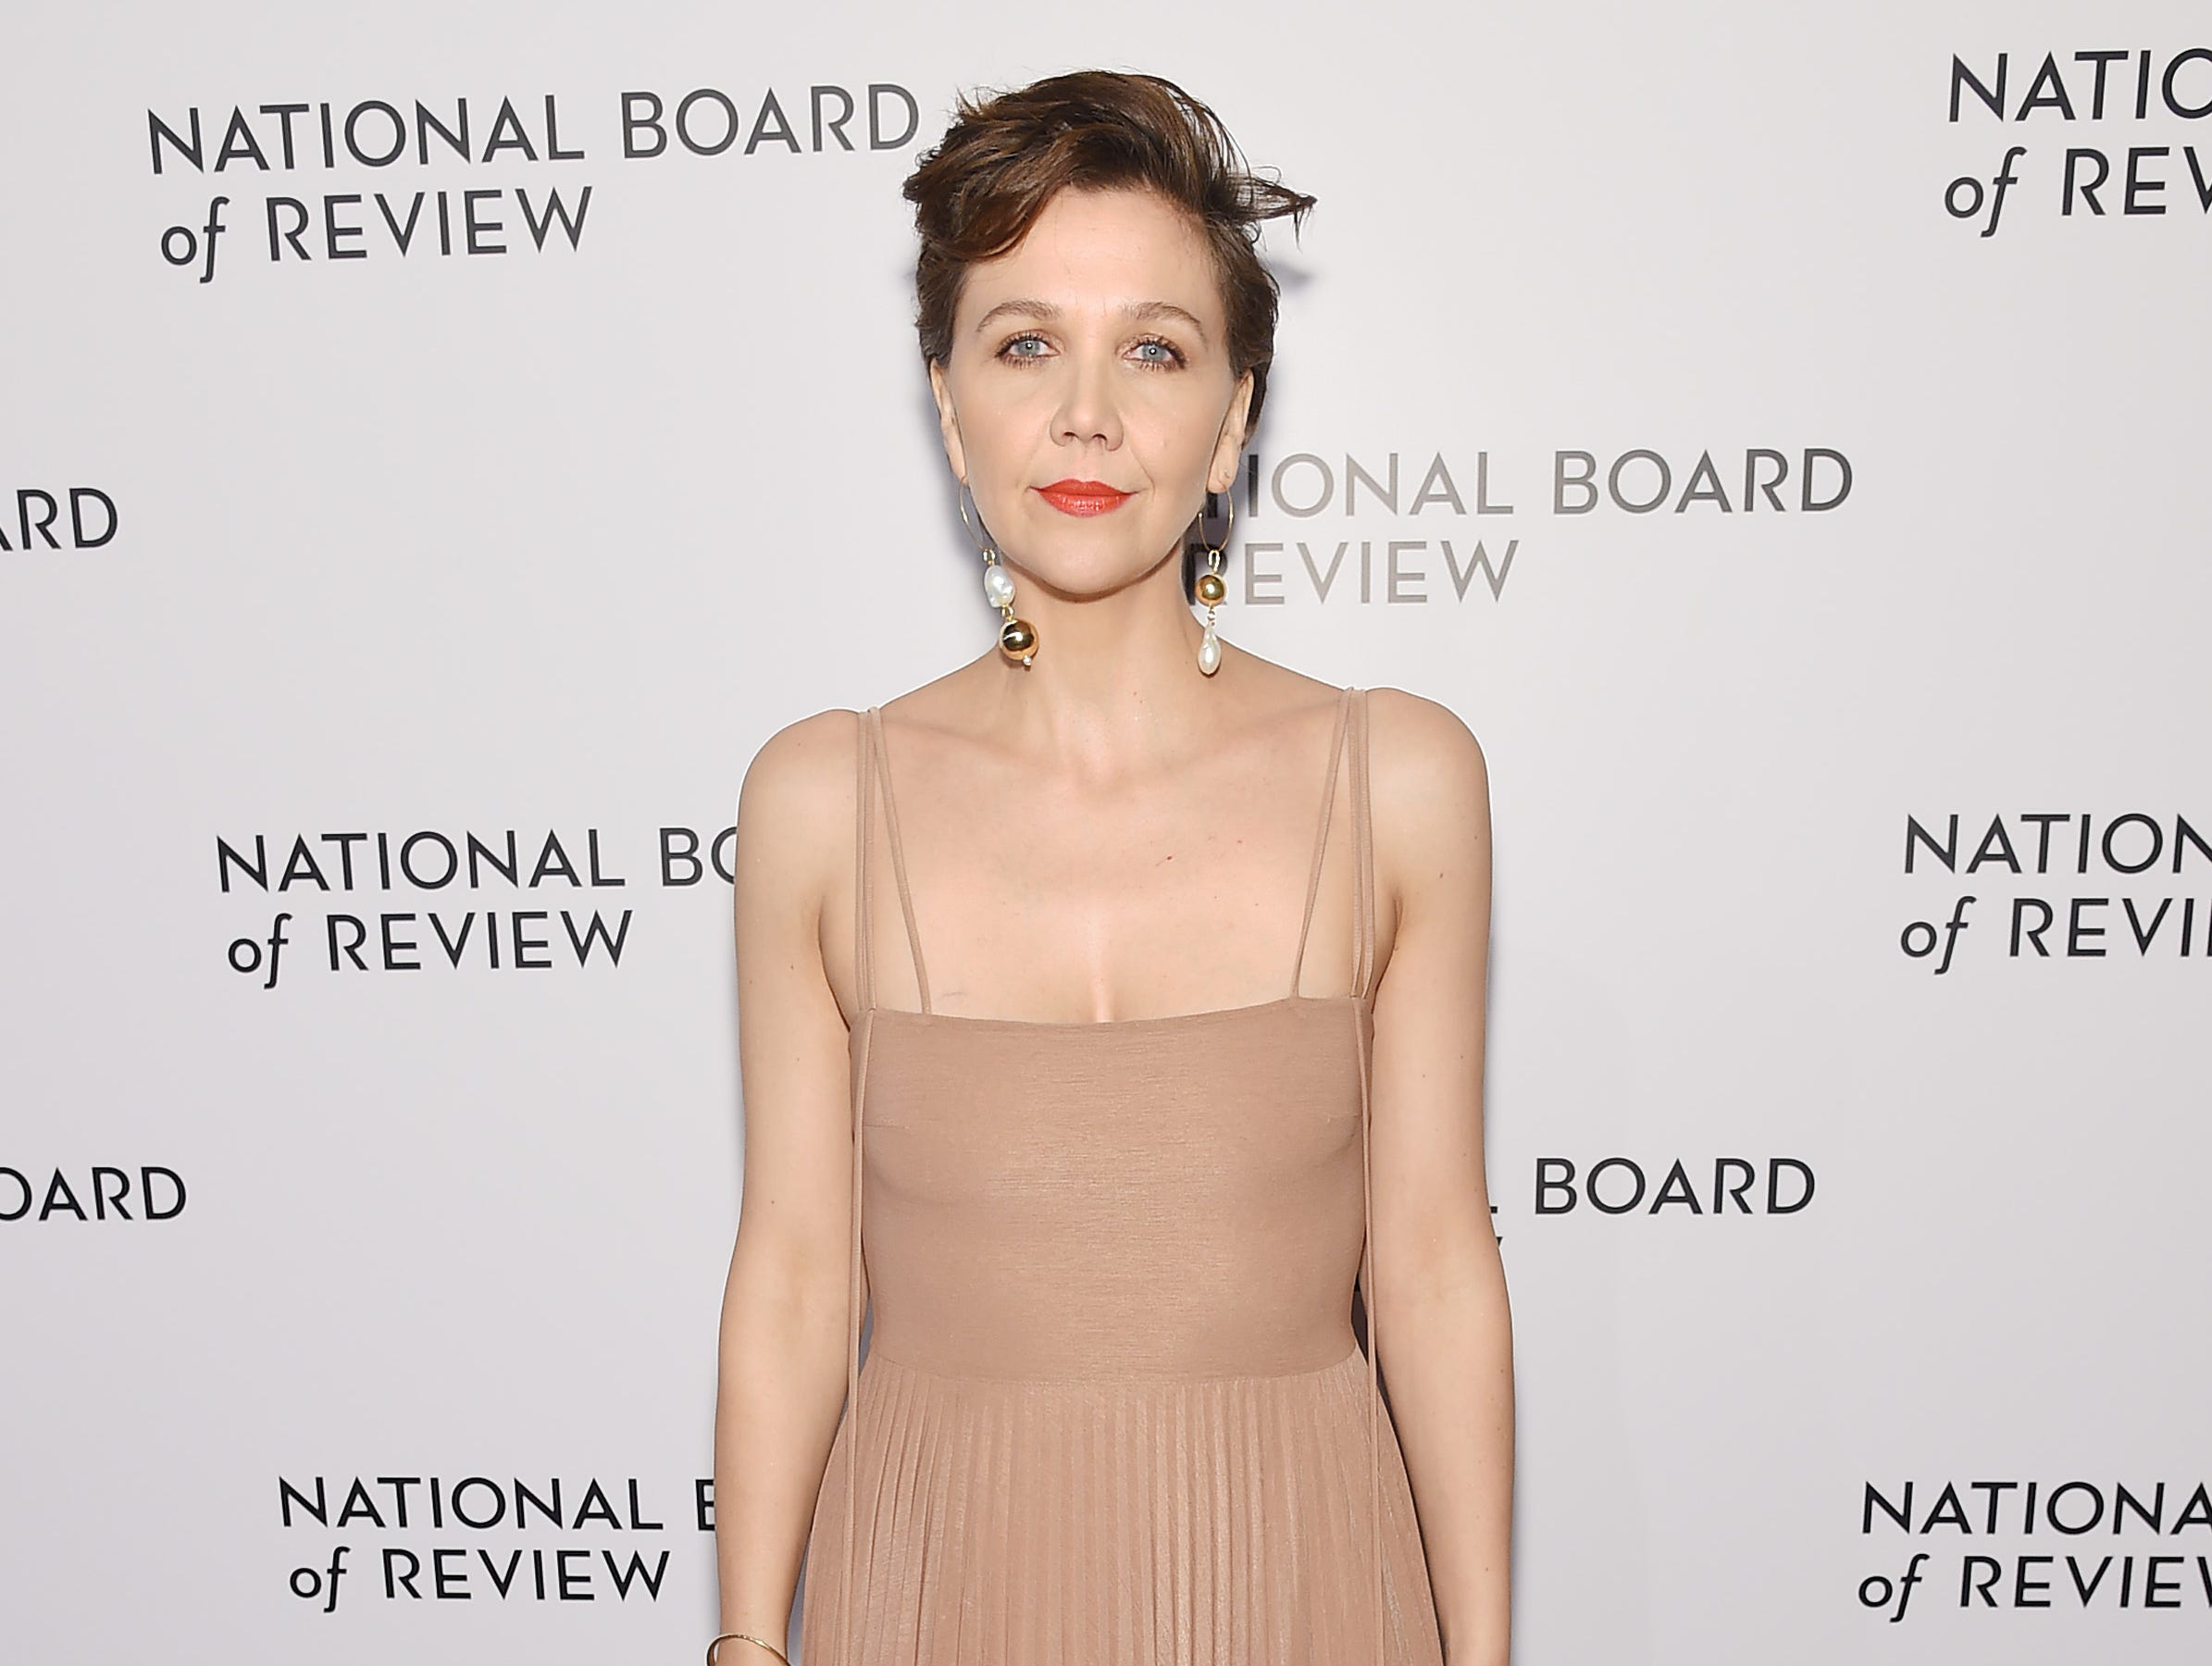 NEW YORK, NY - JANUARY 08: Maggie Gyllenhaal  attends The National Board of Review Annual Awards Gala at Cipriani 42nd Street on January 8, 2019 in New York City.  (Photo by Jamie McCarthy/Getty Images for National Board of Review) ORG XMIT: 775259363 ORIG FILE ID: 1079454032